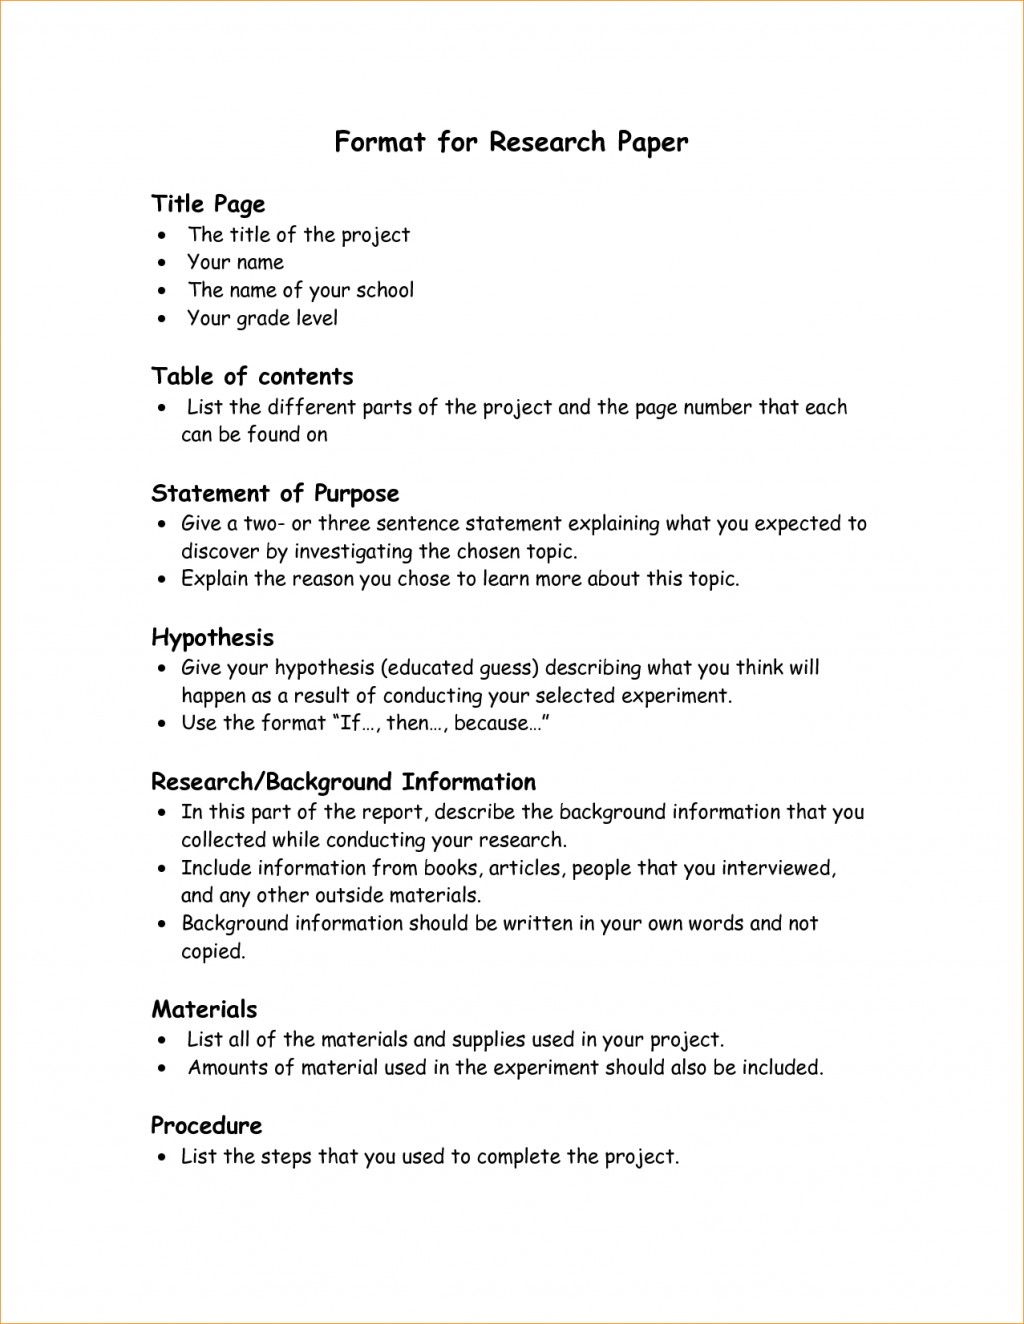 003 Parts Of Research Paper Apa Format Wonderful Large